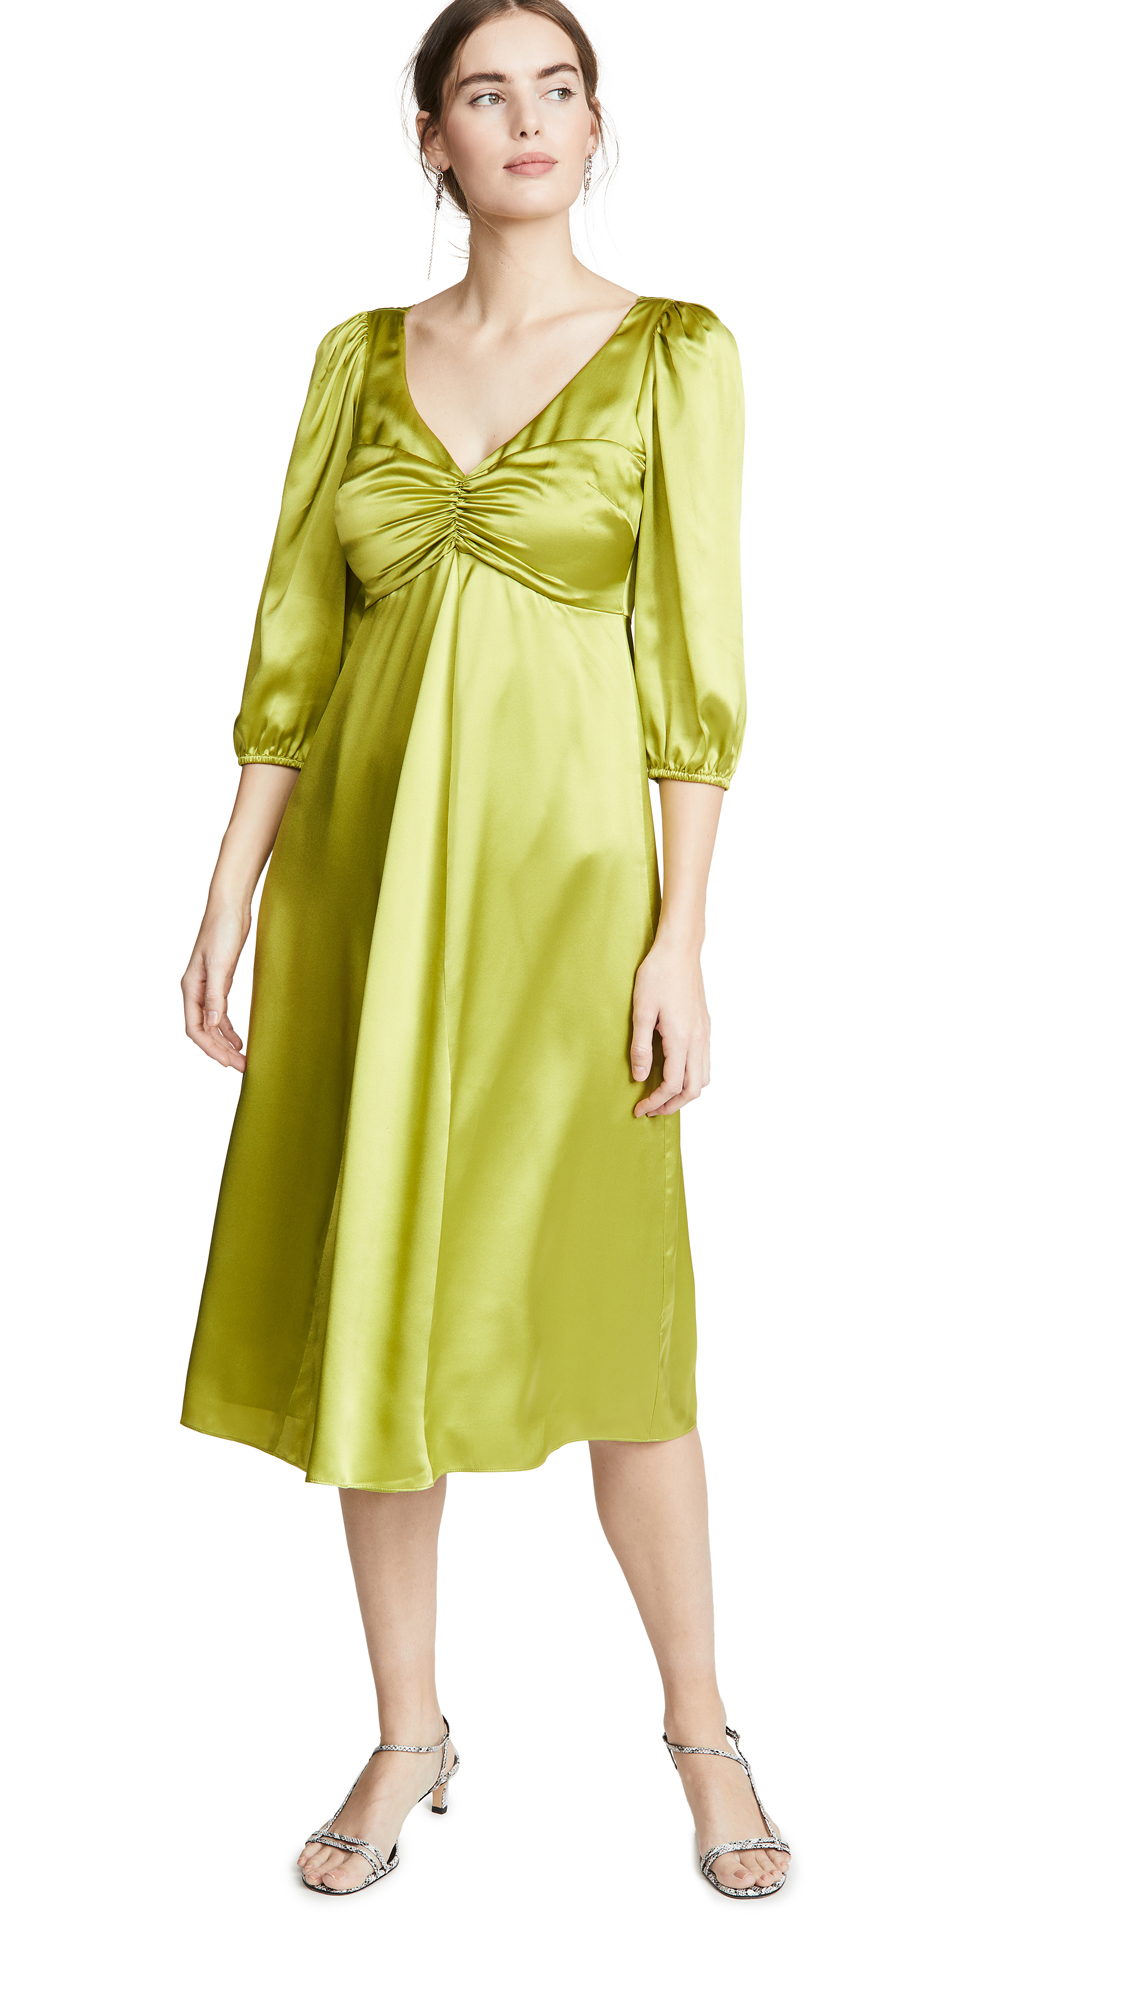 Cinq a Sept Zosia Dress - 60% Off Sale